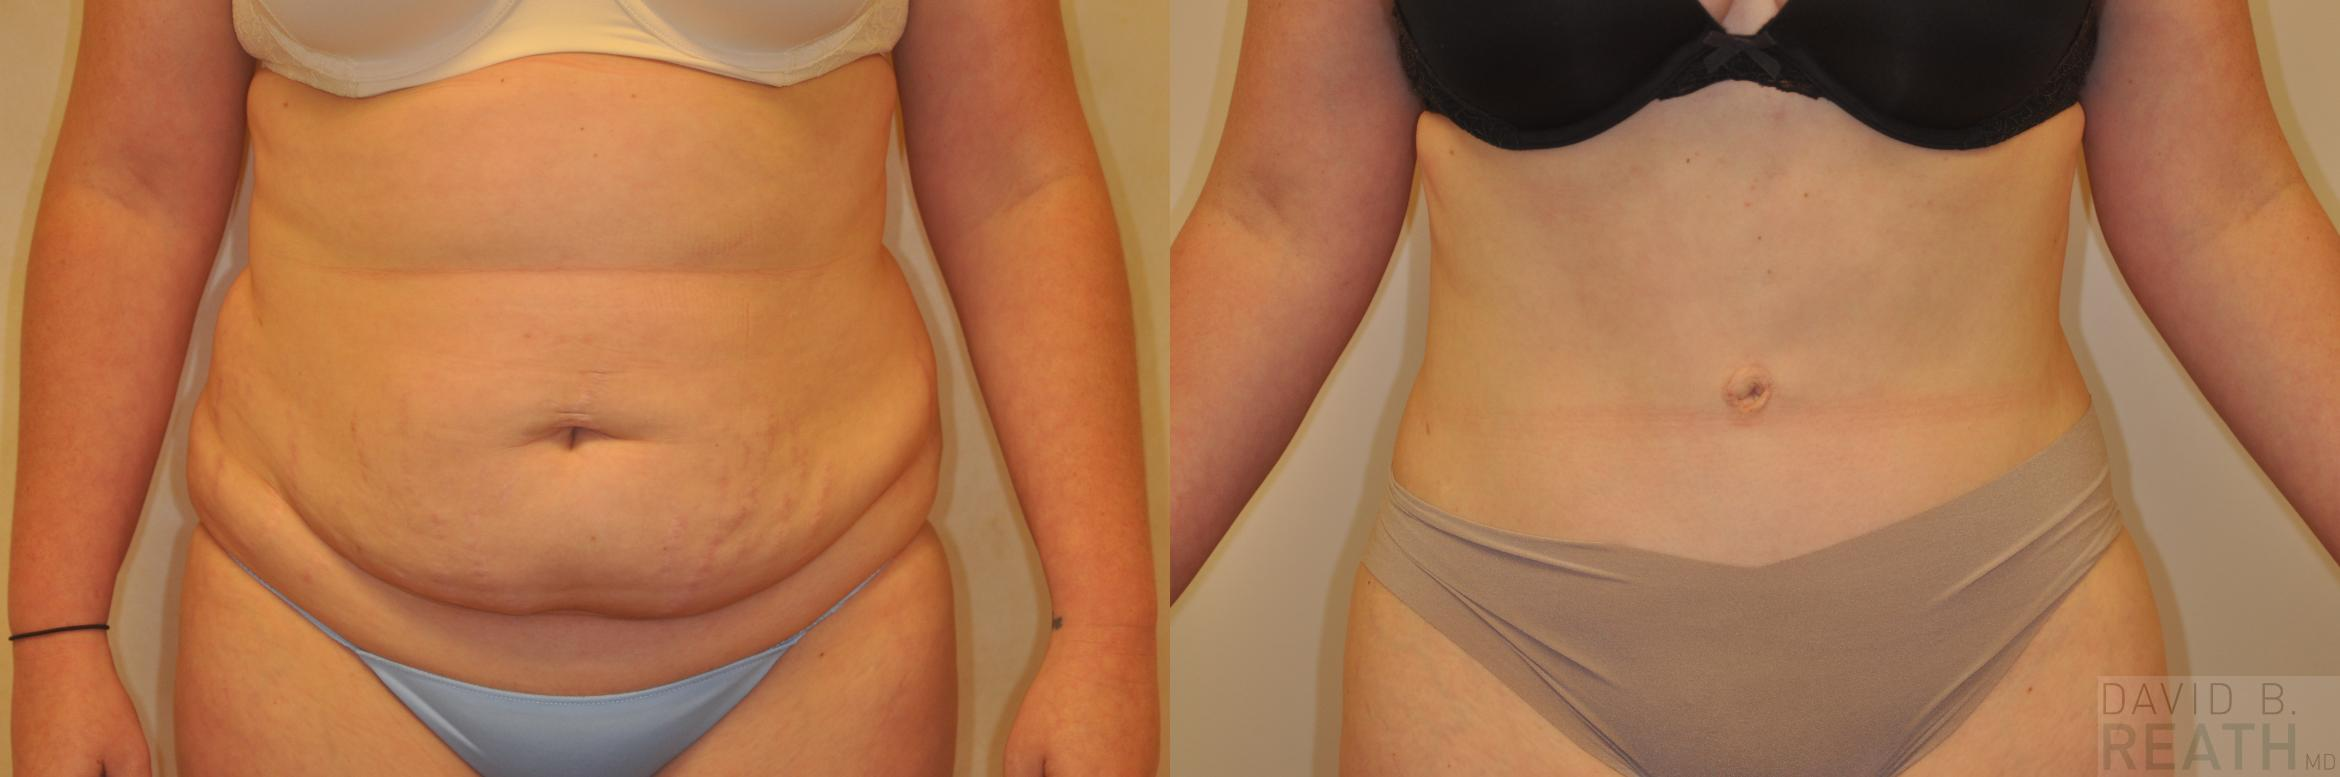 Liposuction Before & After Photo | Knoxville, Tennessee | David B. Reath, MD